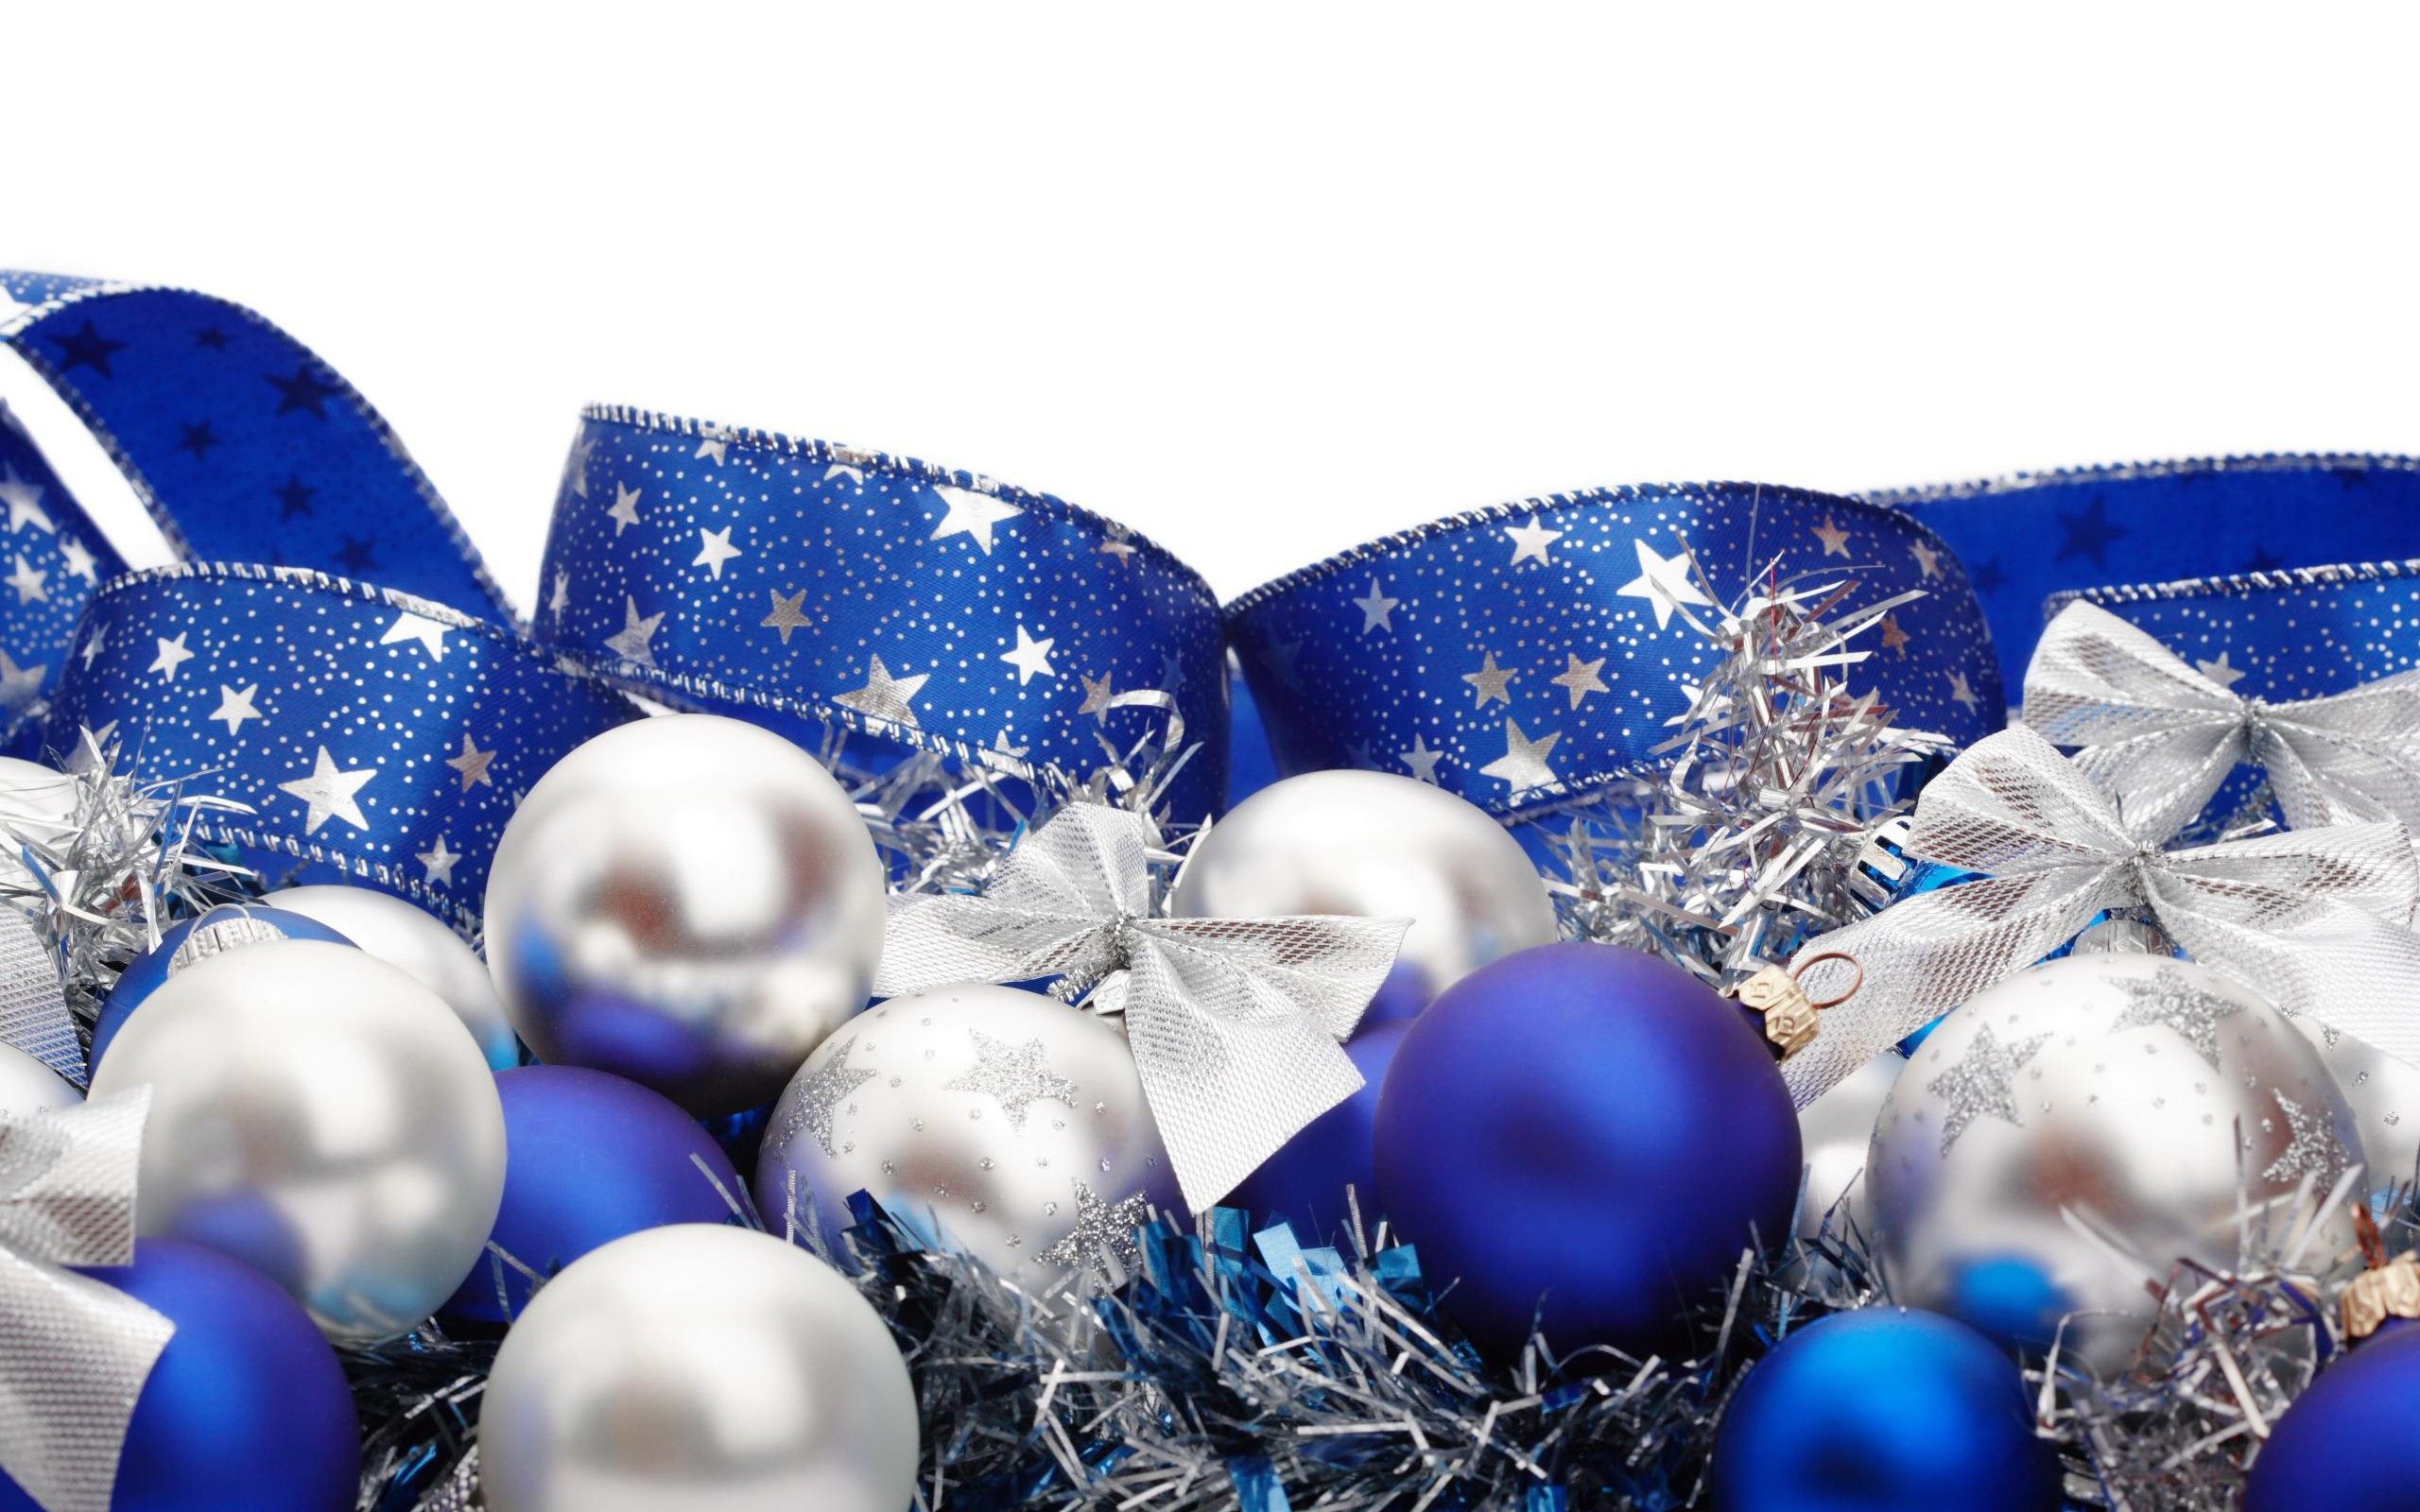 Blue And White Christmas Decorations - Home Design